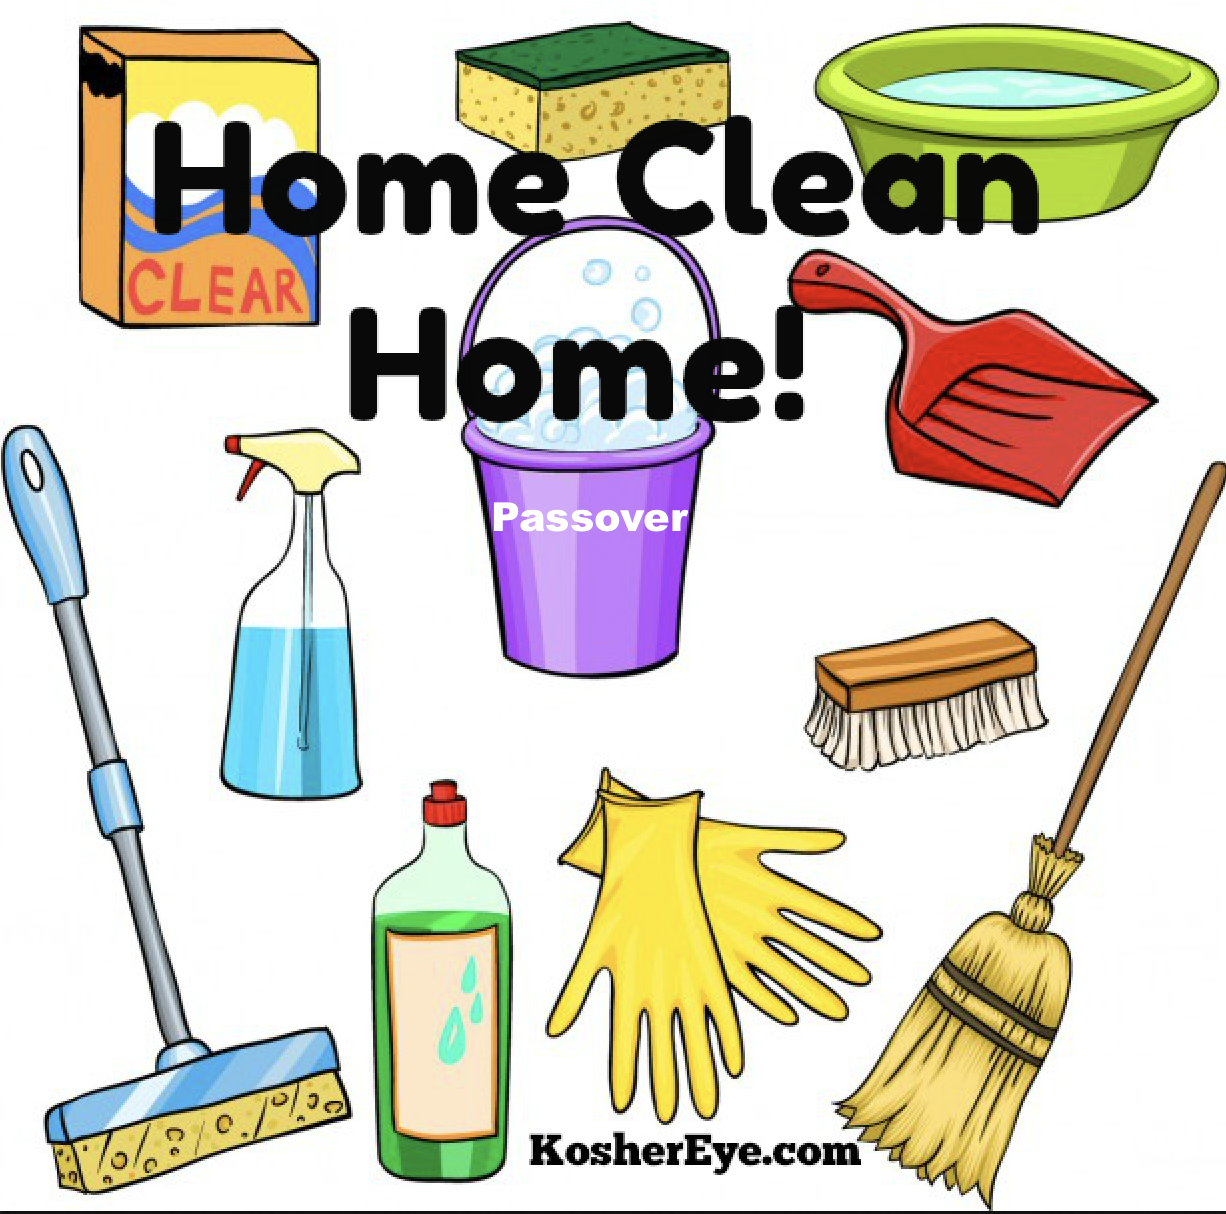 Home clean home clipart copy